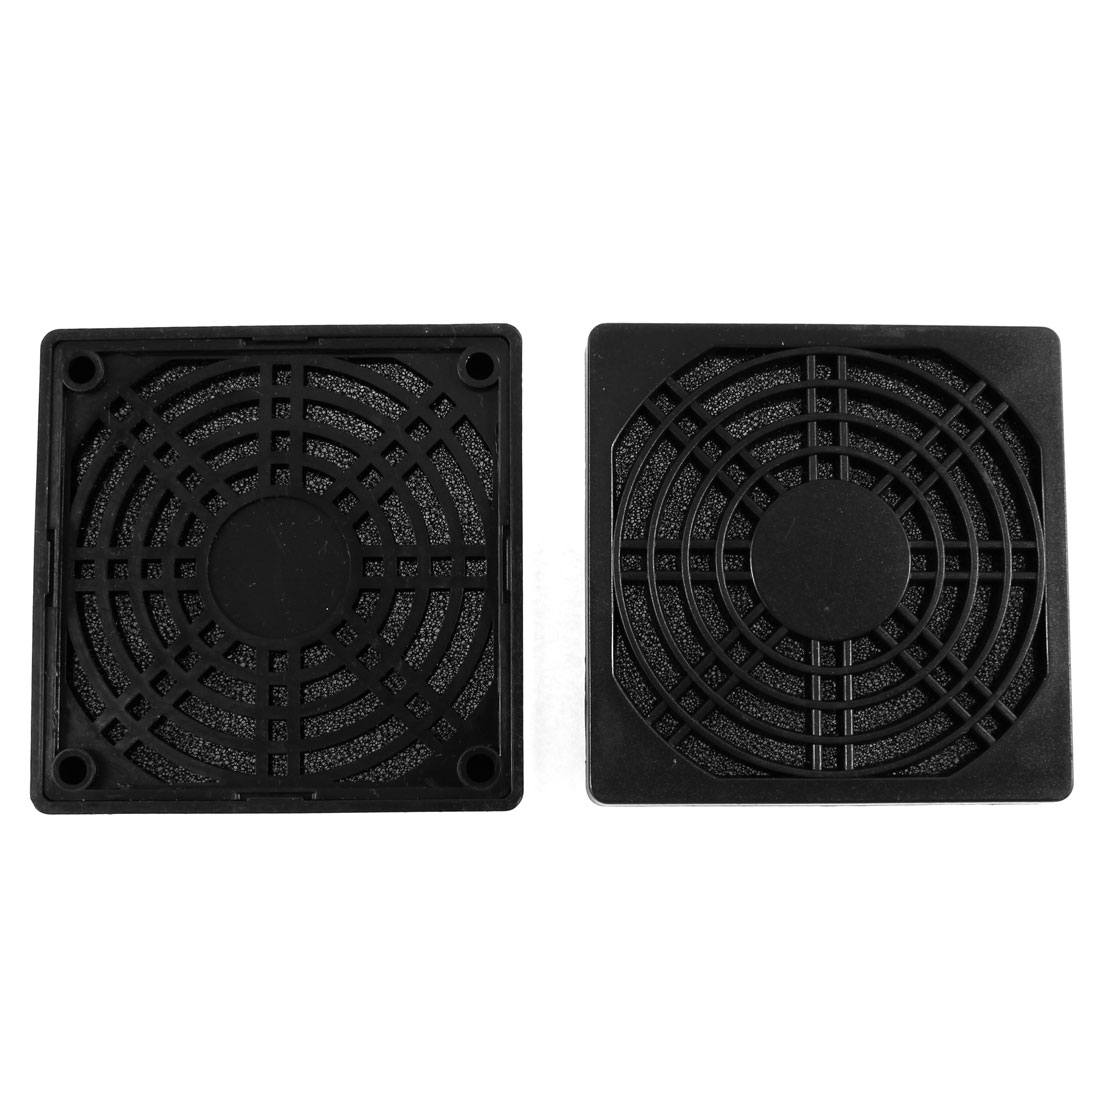 2Pcs PC Case Fan 8.5cm 85mm Plastic Filter Dust Guard Dustproof Mesh Black